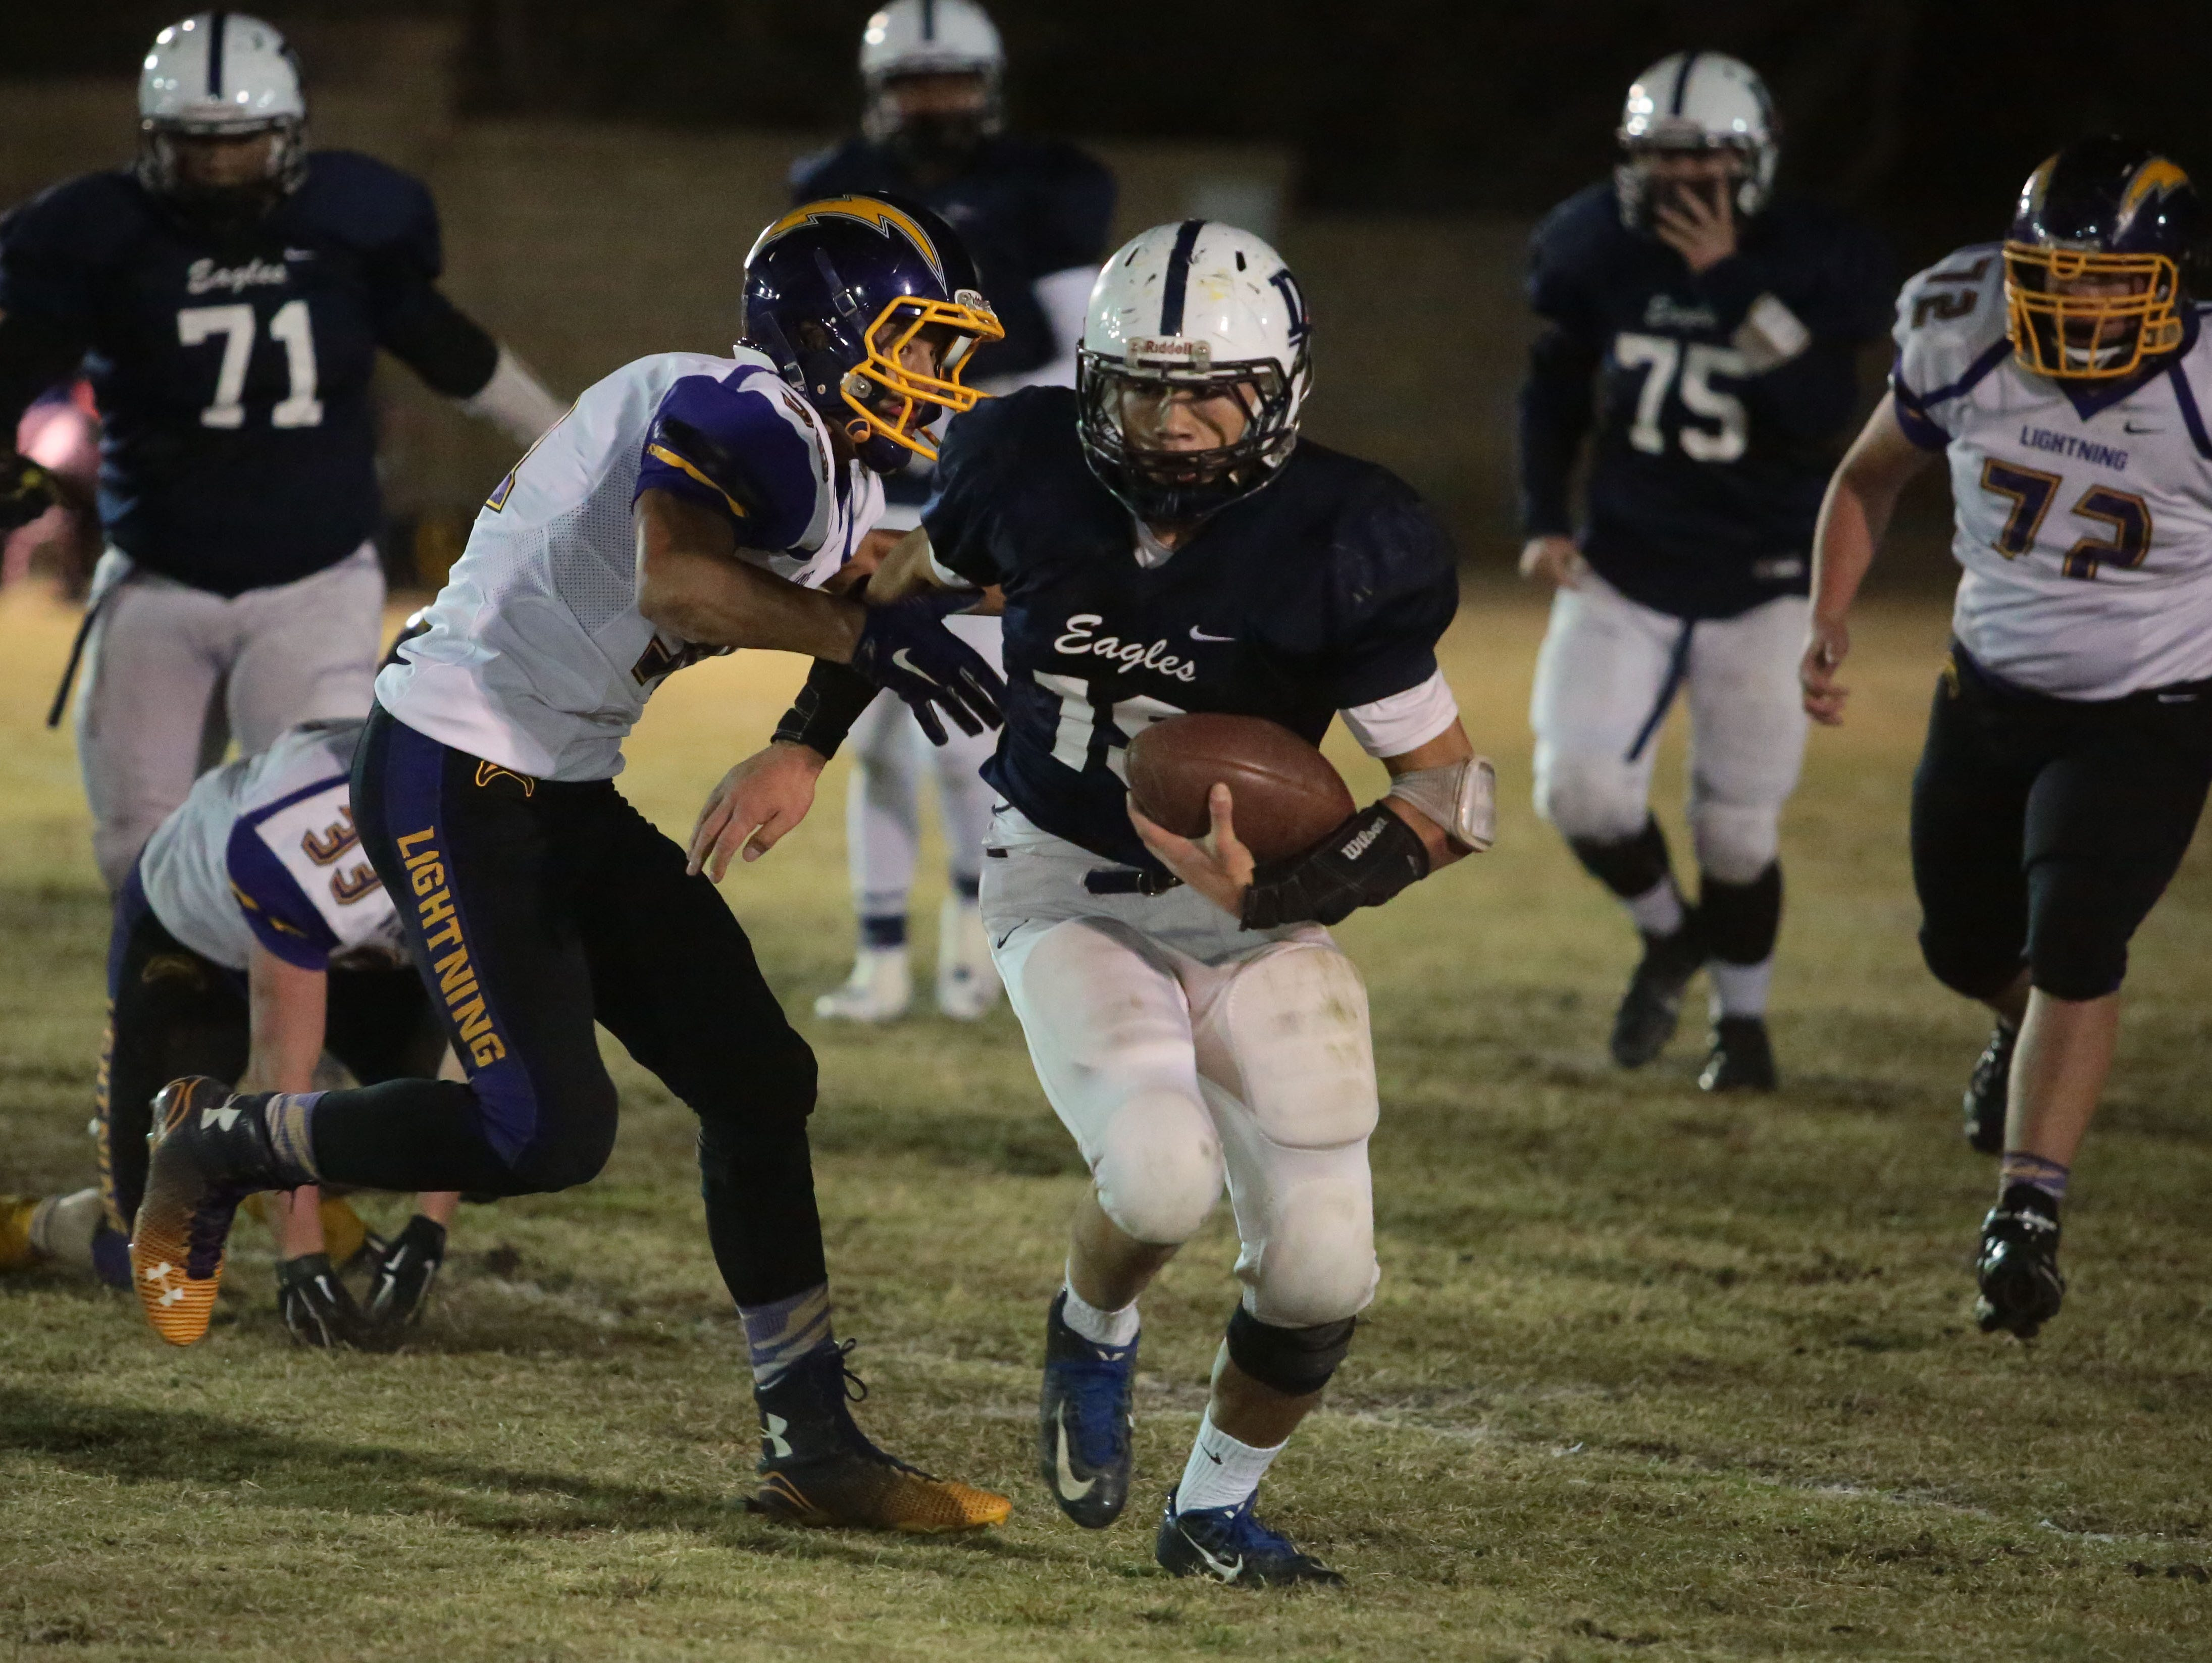 Desert Chapel's Ethan Skarmas carries the ball against Joshua Springs during the CIF-SS Div. II 8-man football championship in Palm Springs on Saturday.